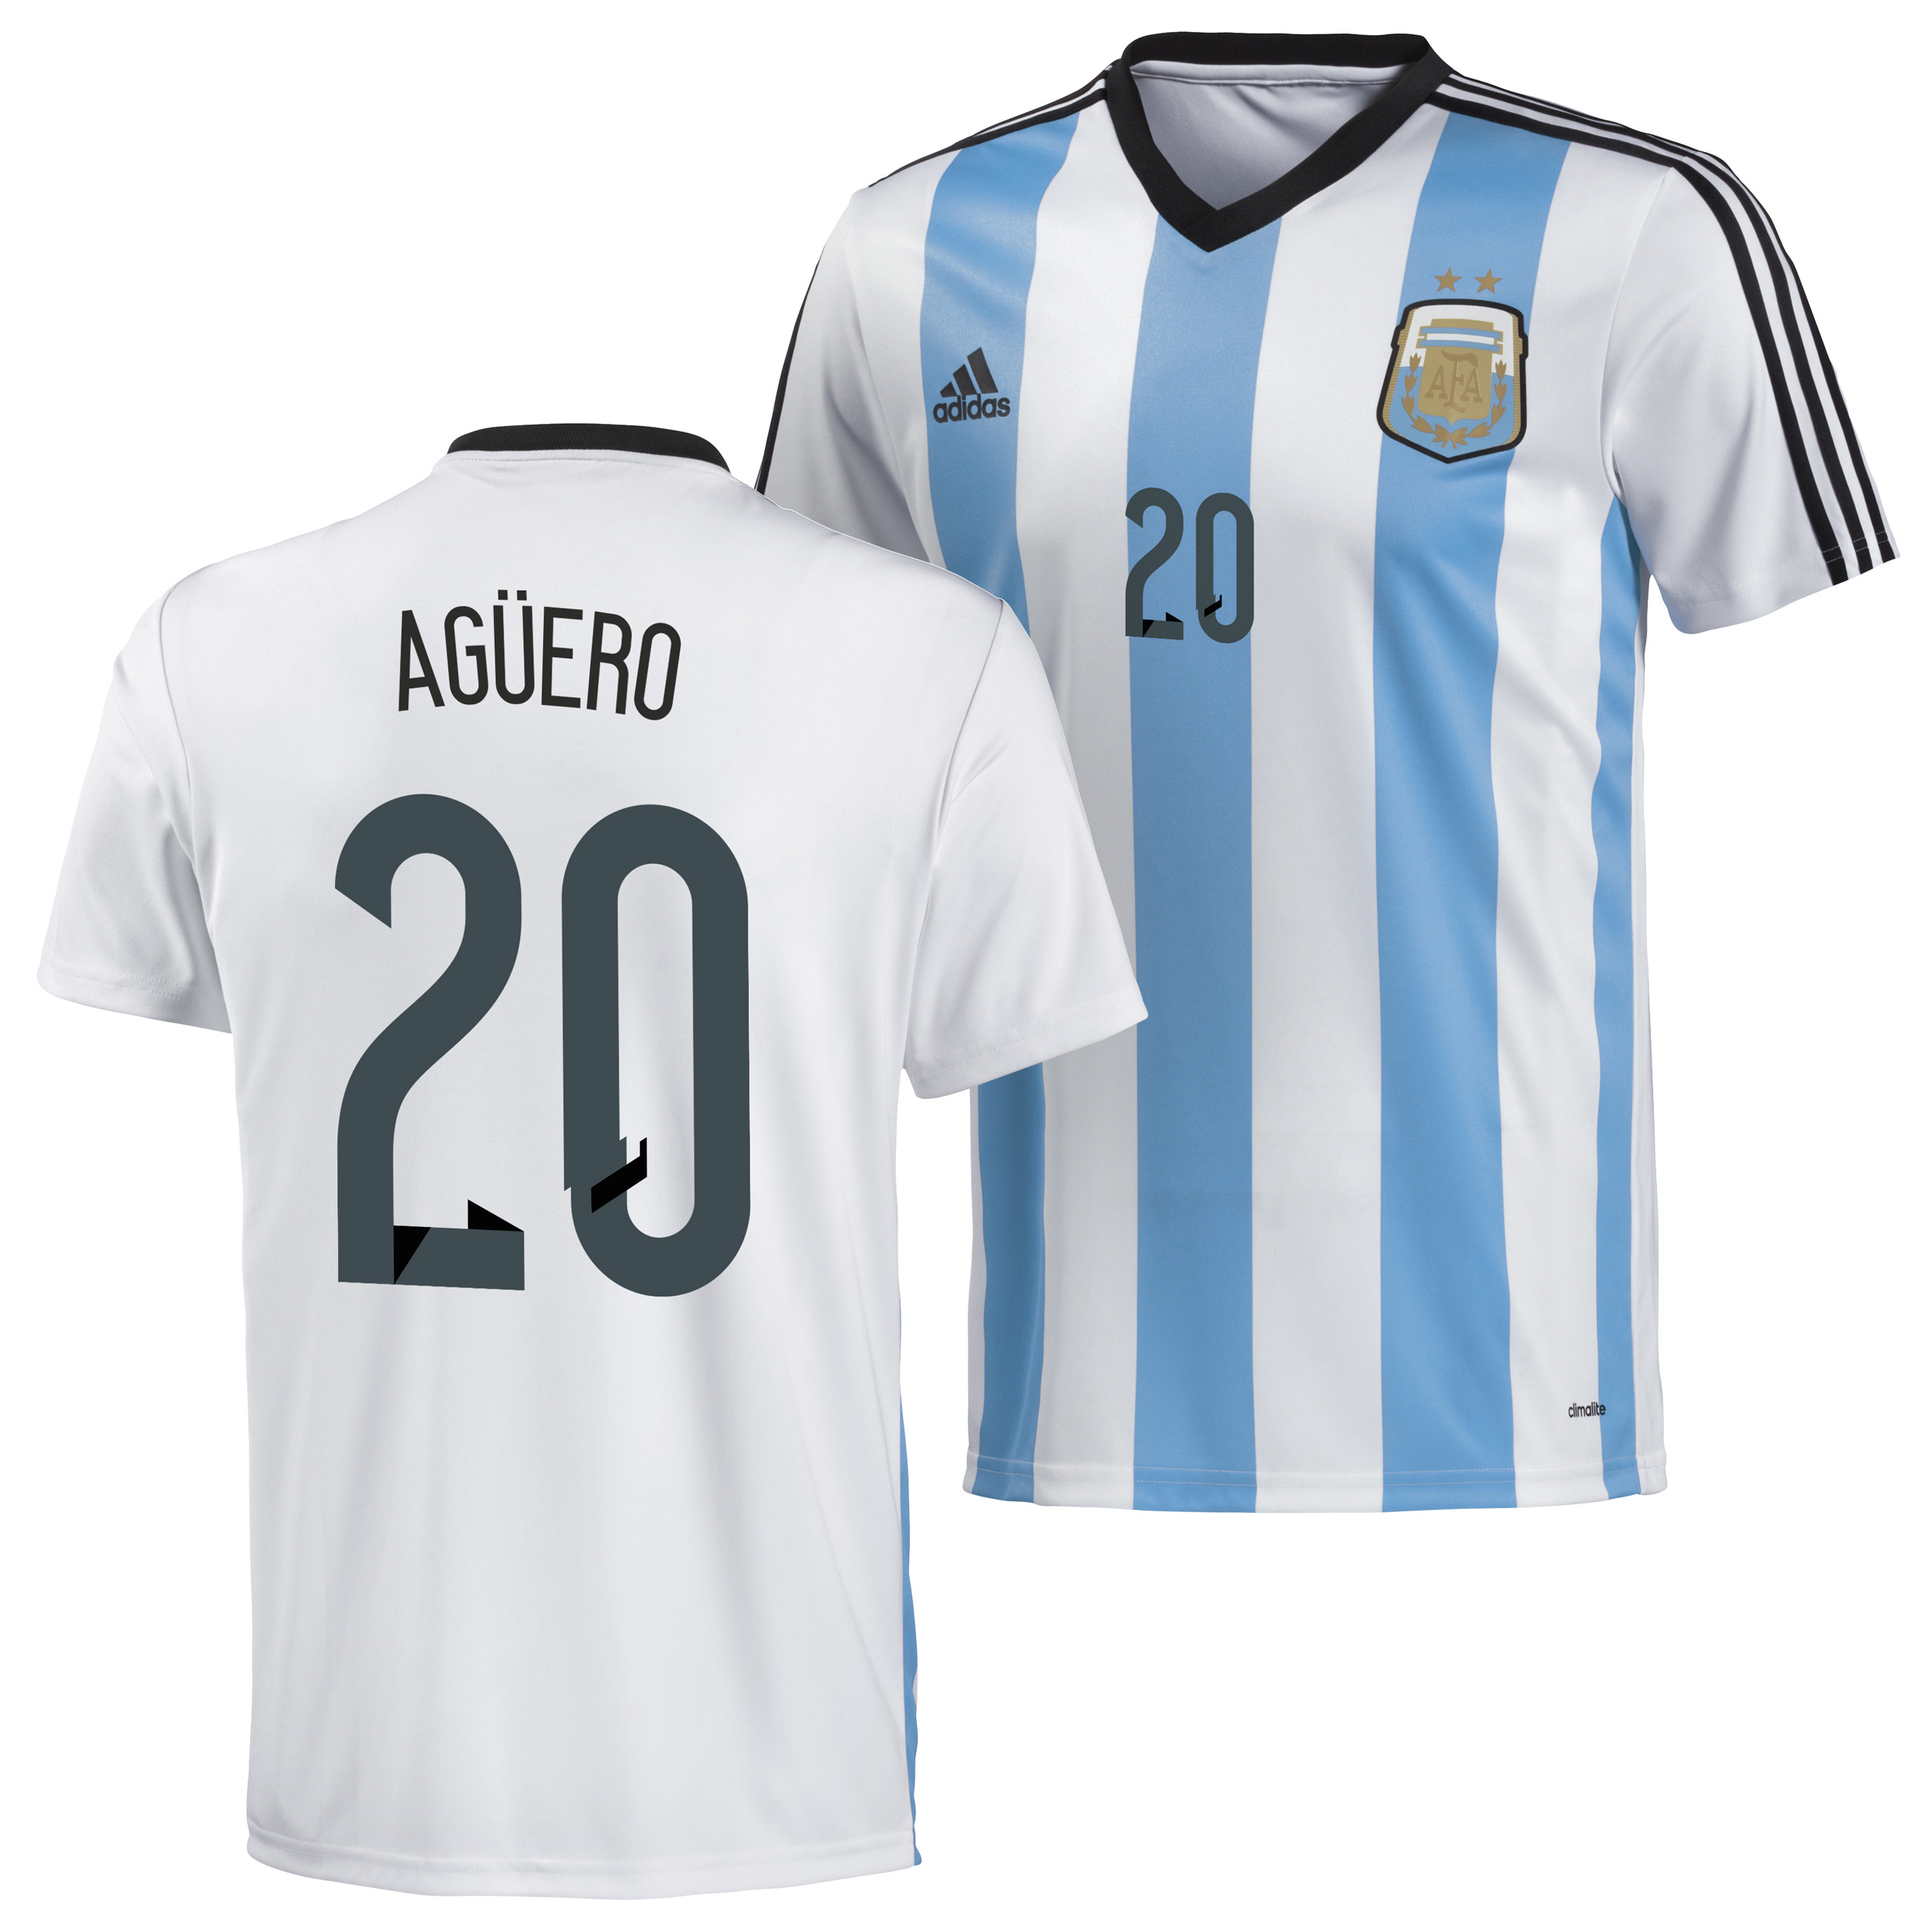 Argentina Home Replica T-Shirt 2013/14 with Aguero 20 printing